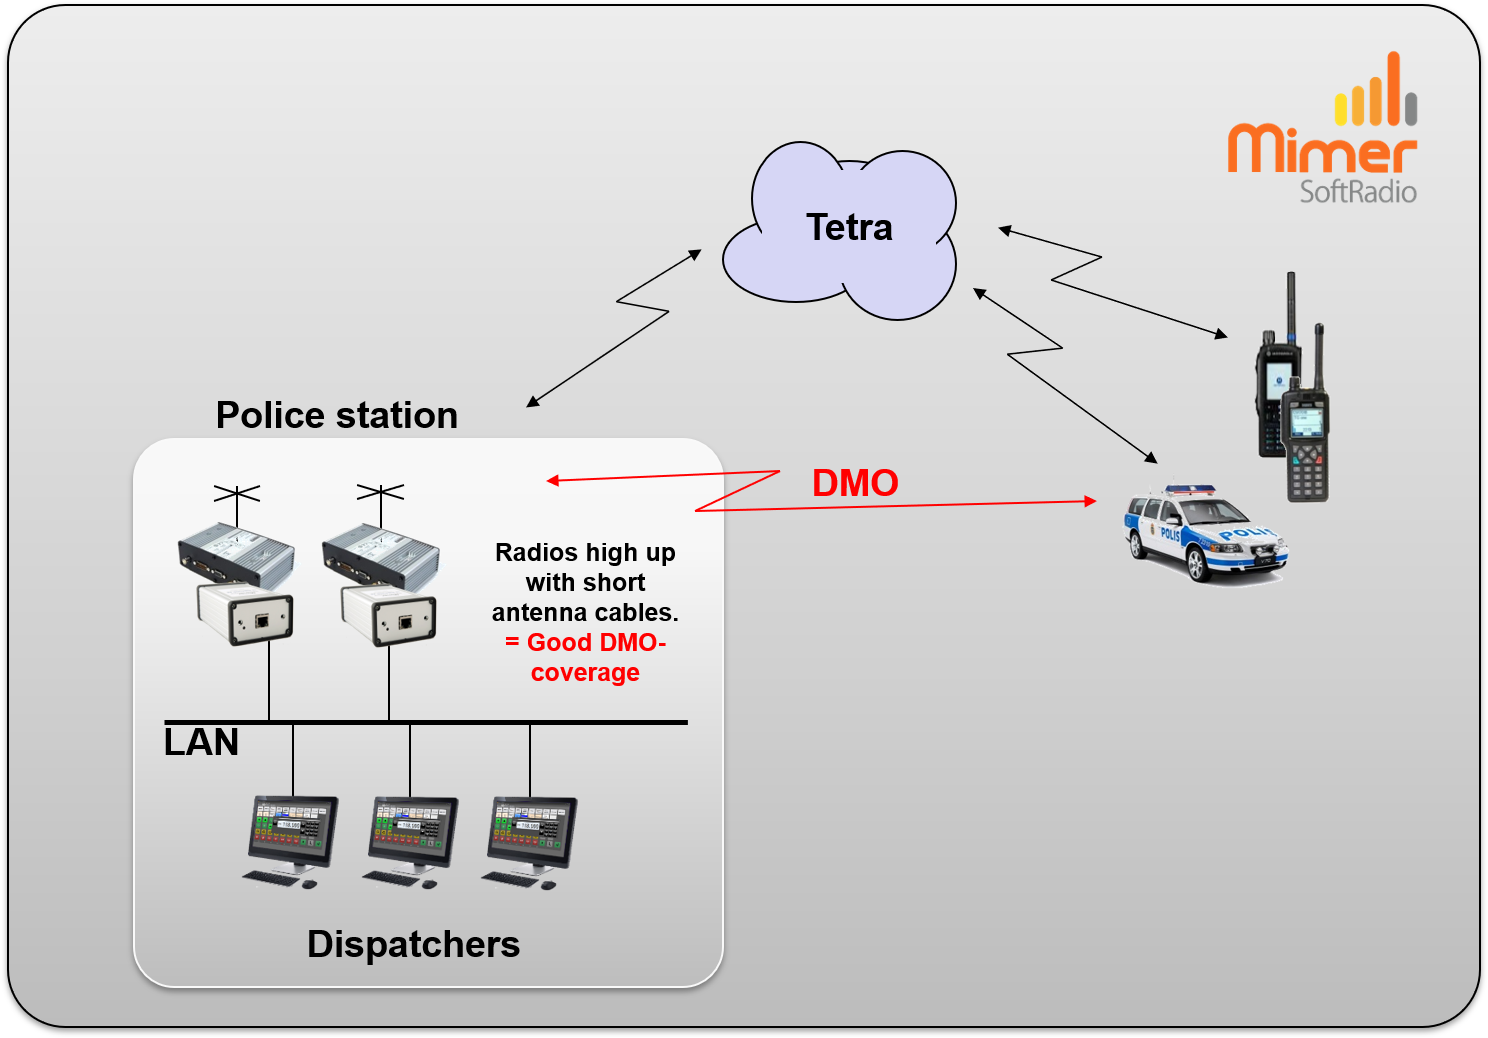 Police station with fixed mobile radios